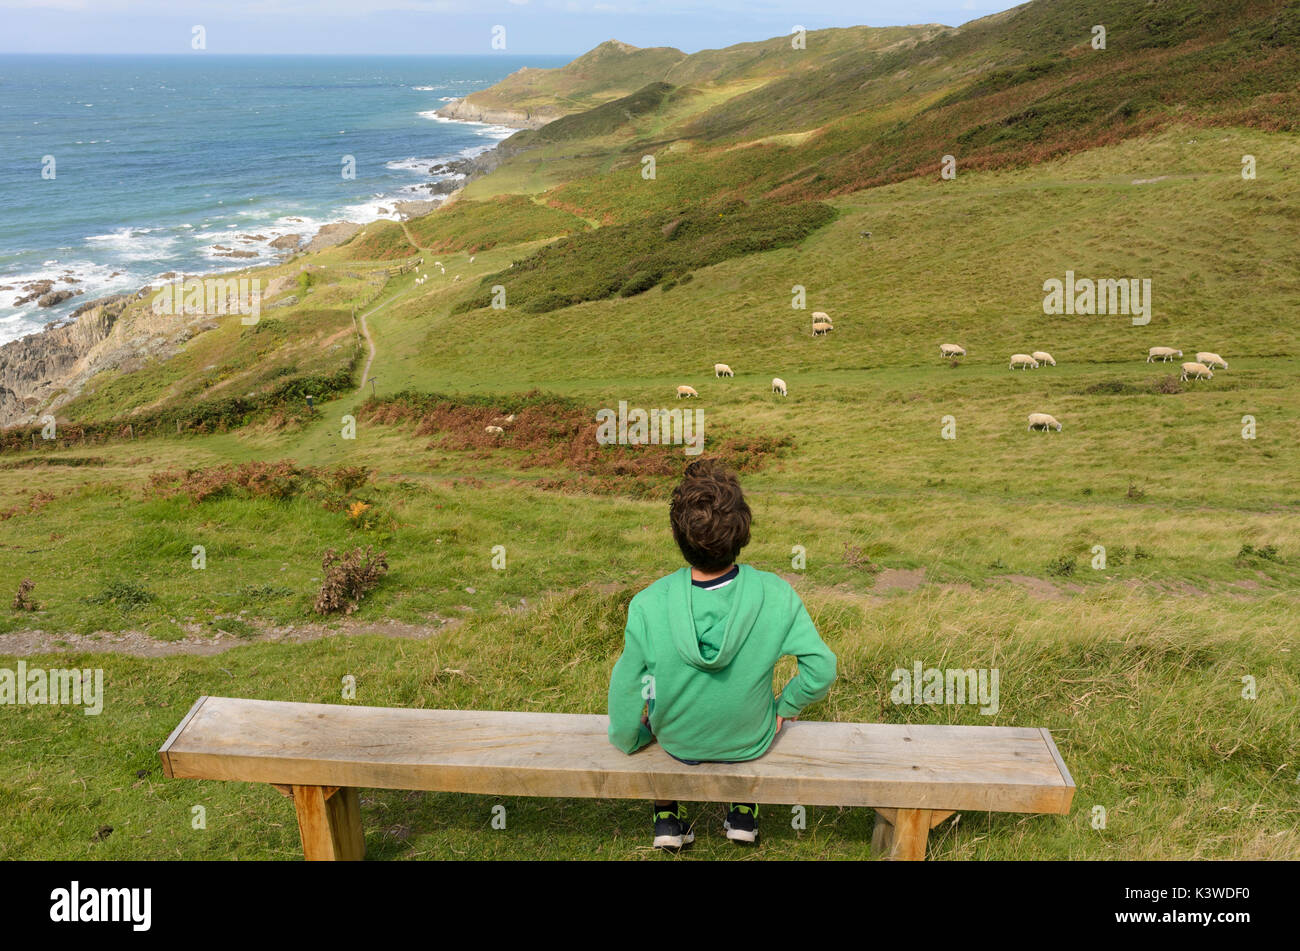 Looking out to sea, near Morthoe, North Devon. - Stock Image